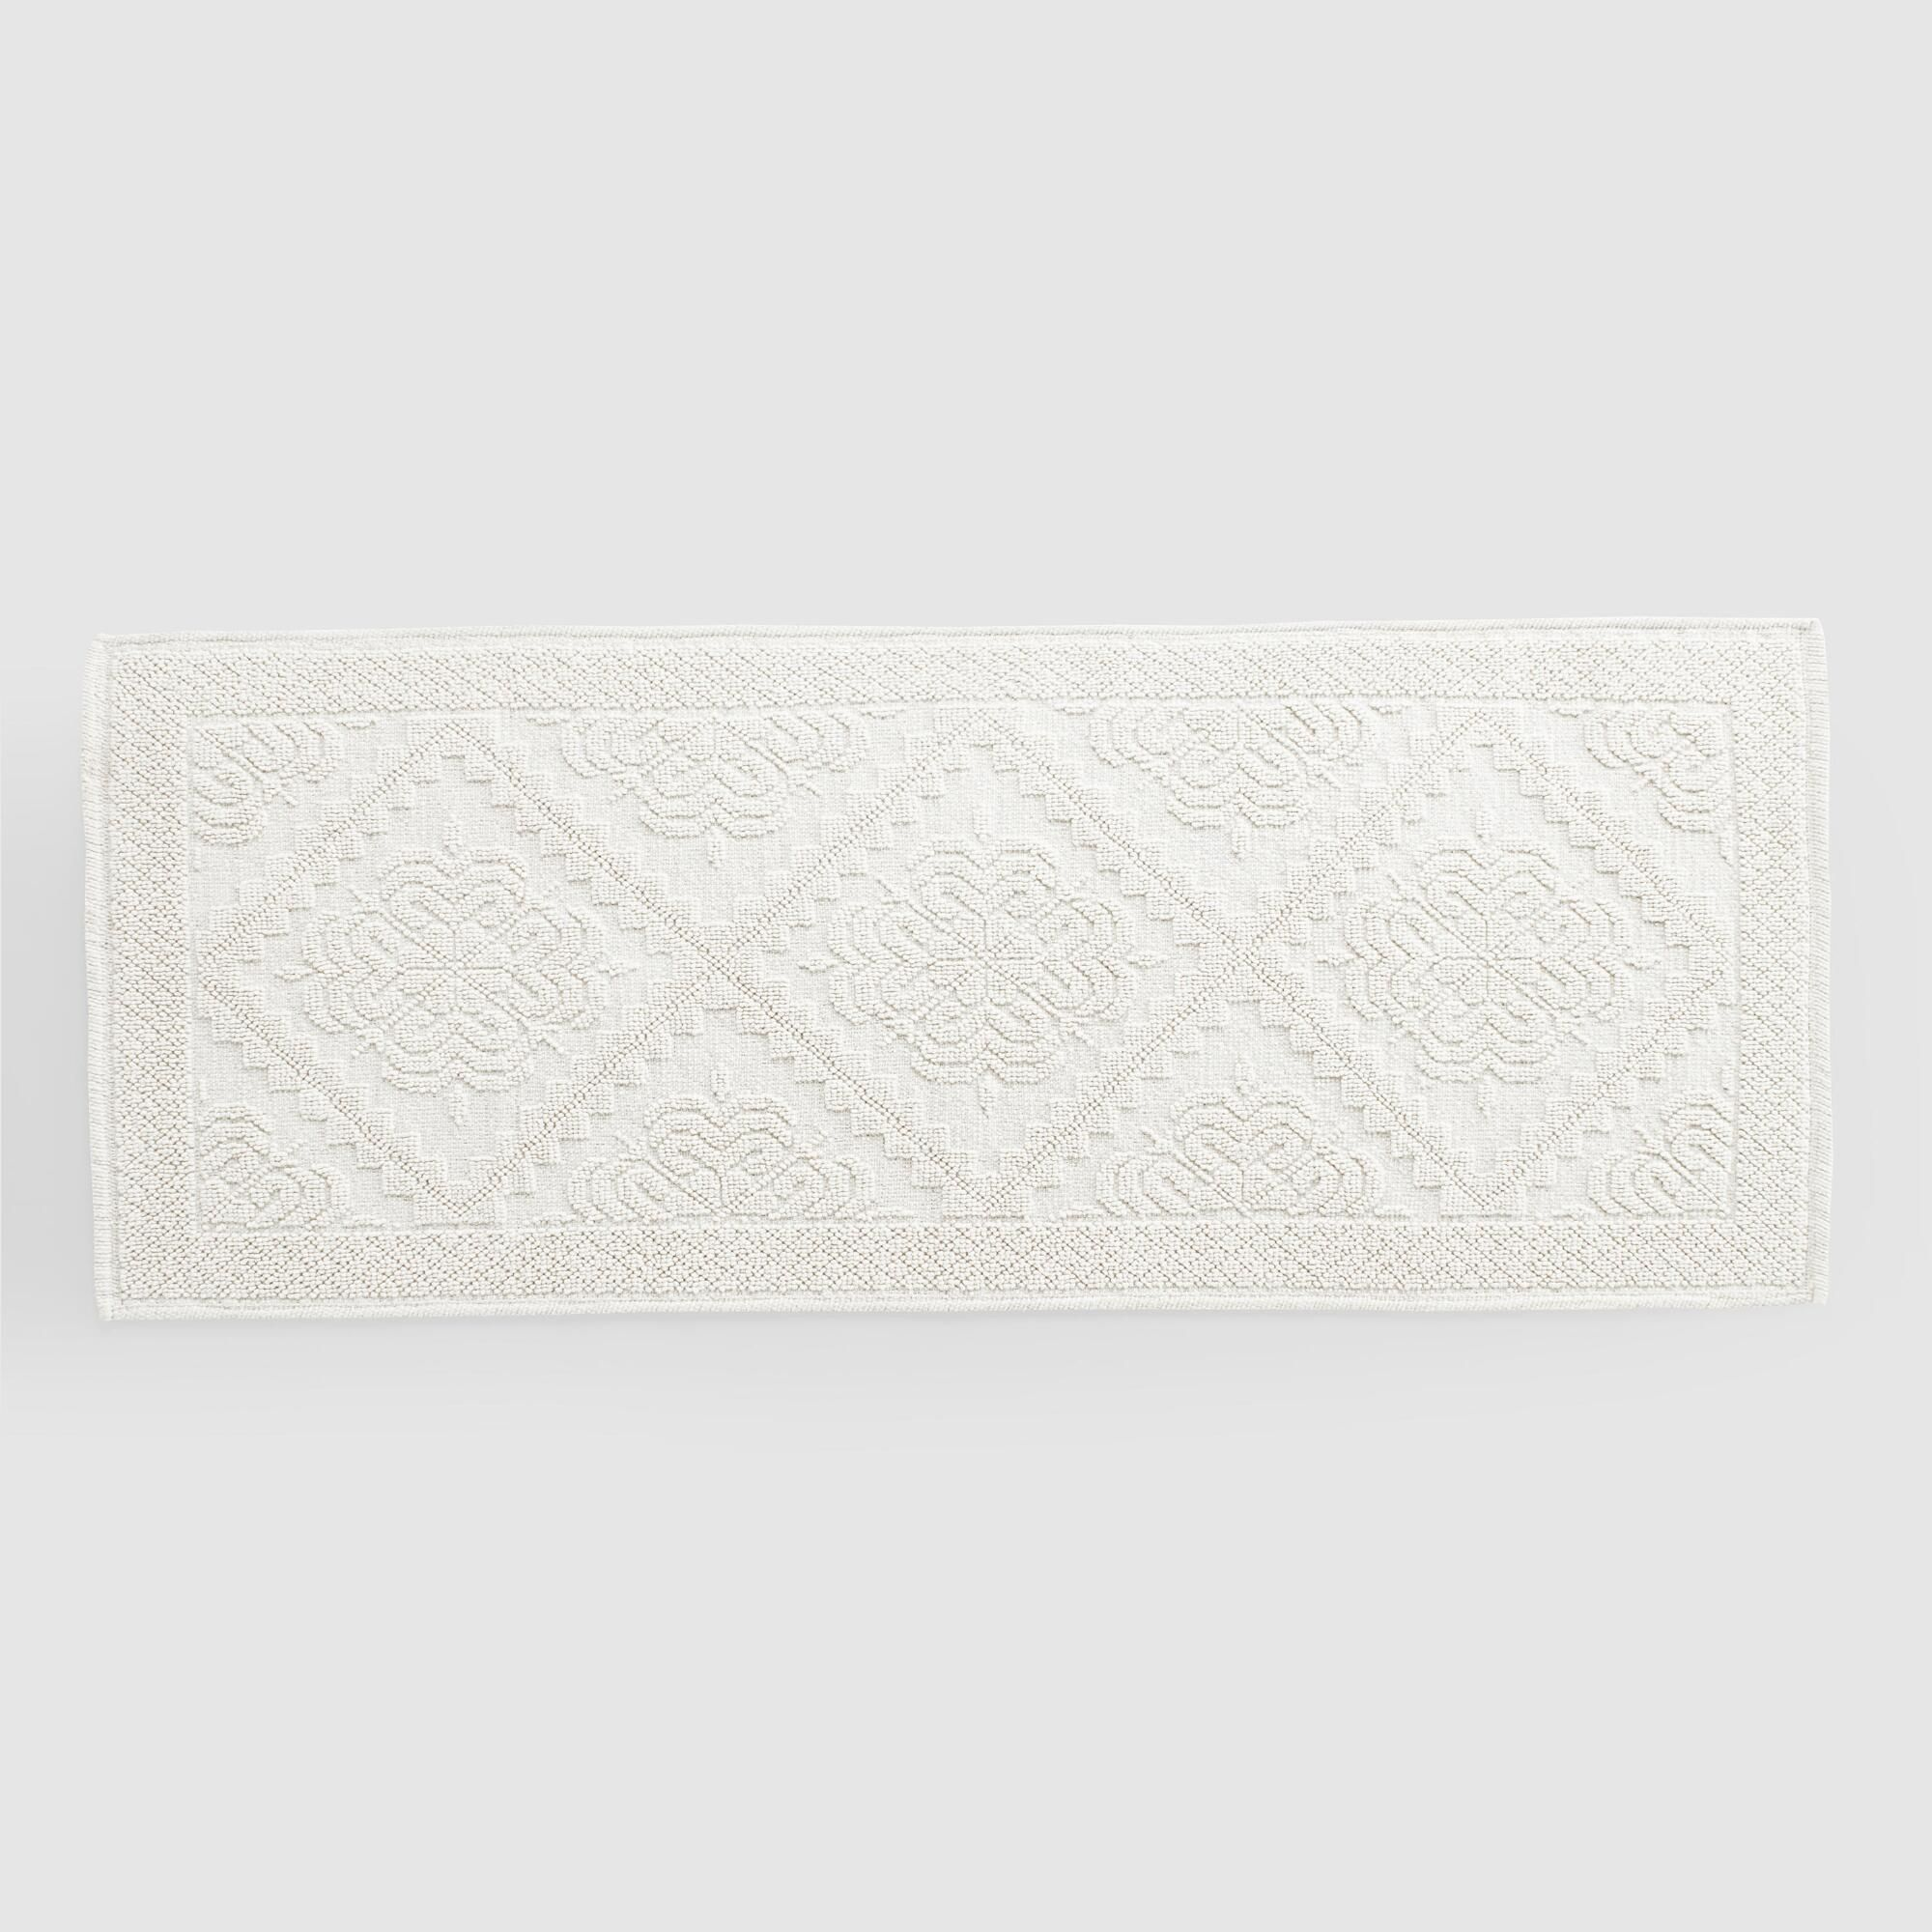 Extra Long Ivory Woven Bath Mat White Cotton By World Market In 2021 Bathroom Rugs Large Bathroom Rugs Long Bathroom Rugs [ 2000 x 2000 Pixel ]